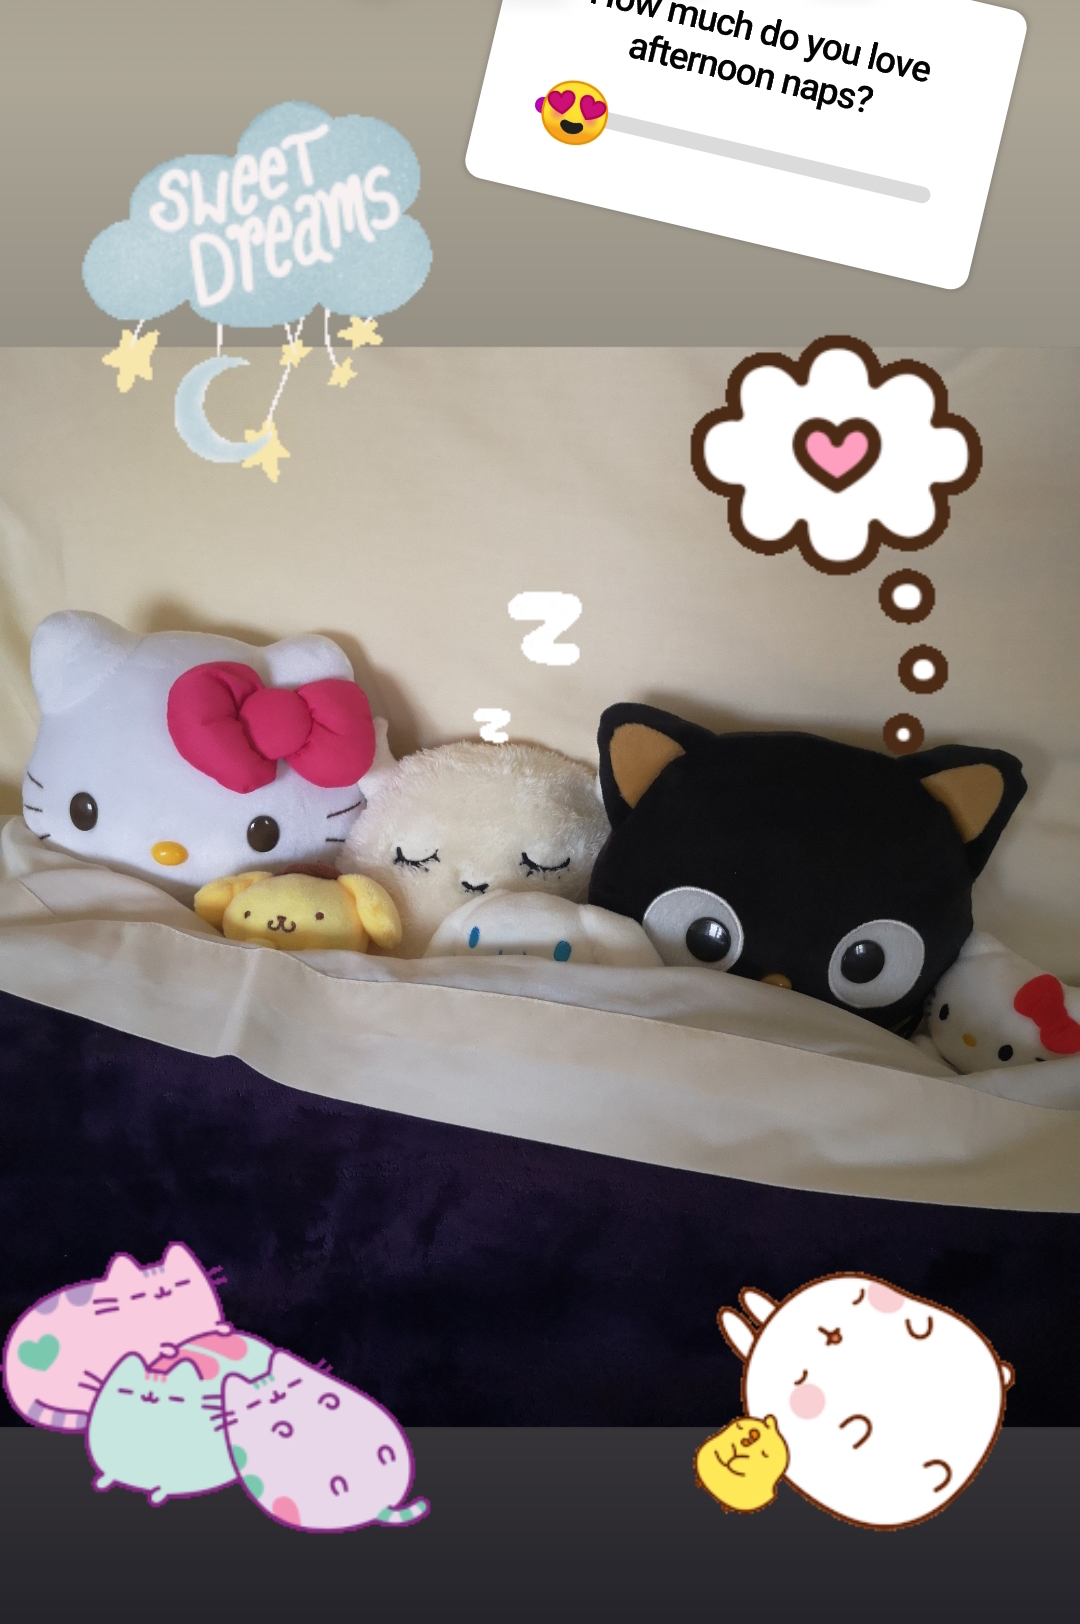 Some of our plushes all snuggled up!